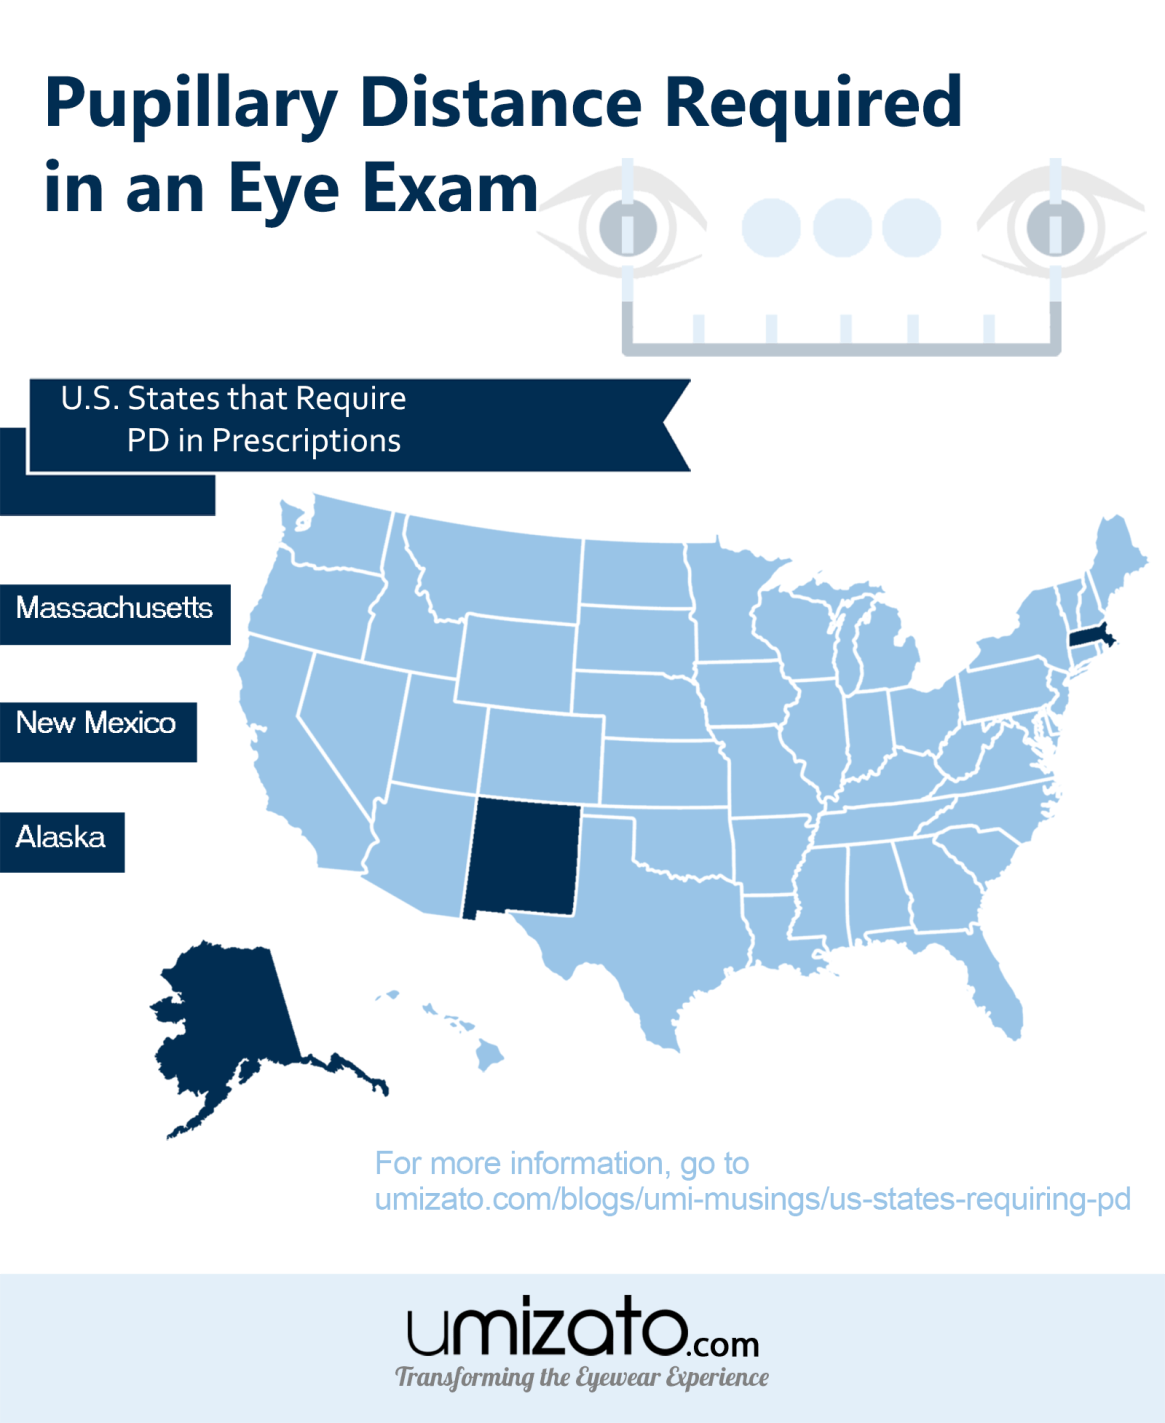 Pupillary Distance (PD) Required in US States